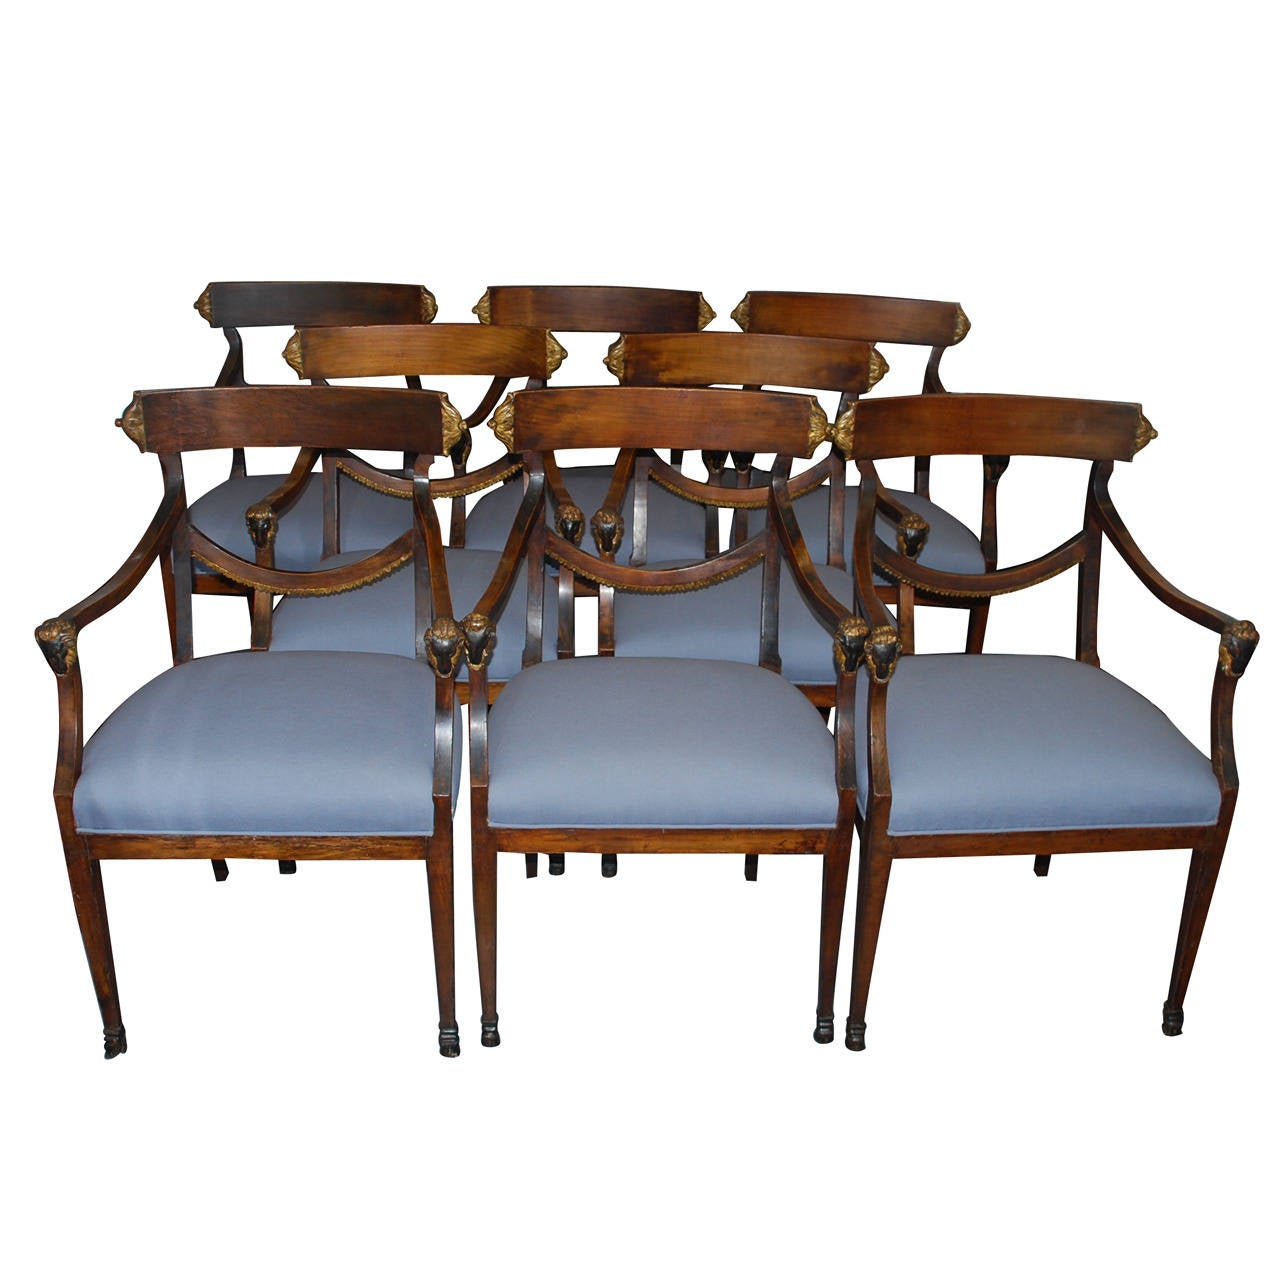 Set of eight Italian Neoclassical ram's head dining chairs.  Eight neoclassical parcel-gilt and parcel ebonized wood armchairs with ram's head armrest terminals and front hoof feet, Italy, circa 1800. Provenance: Estate of Louis Auchincloss Newly